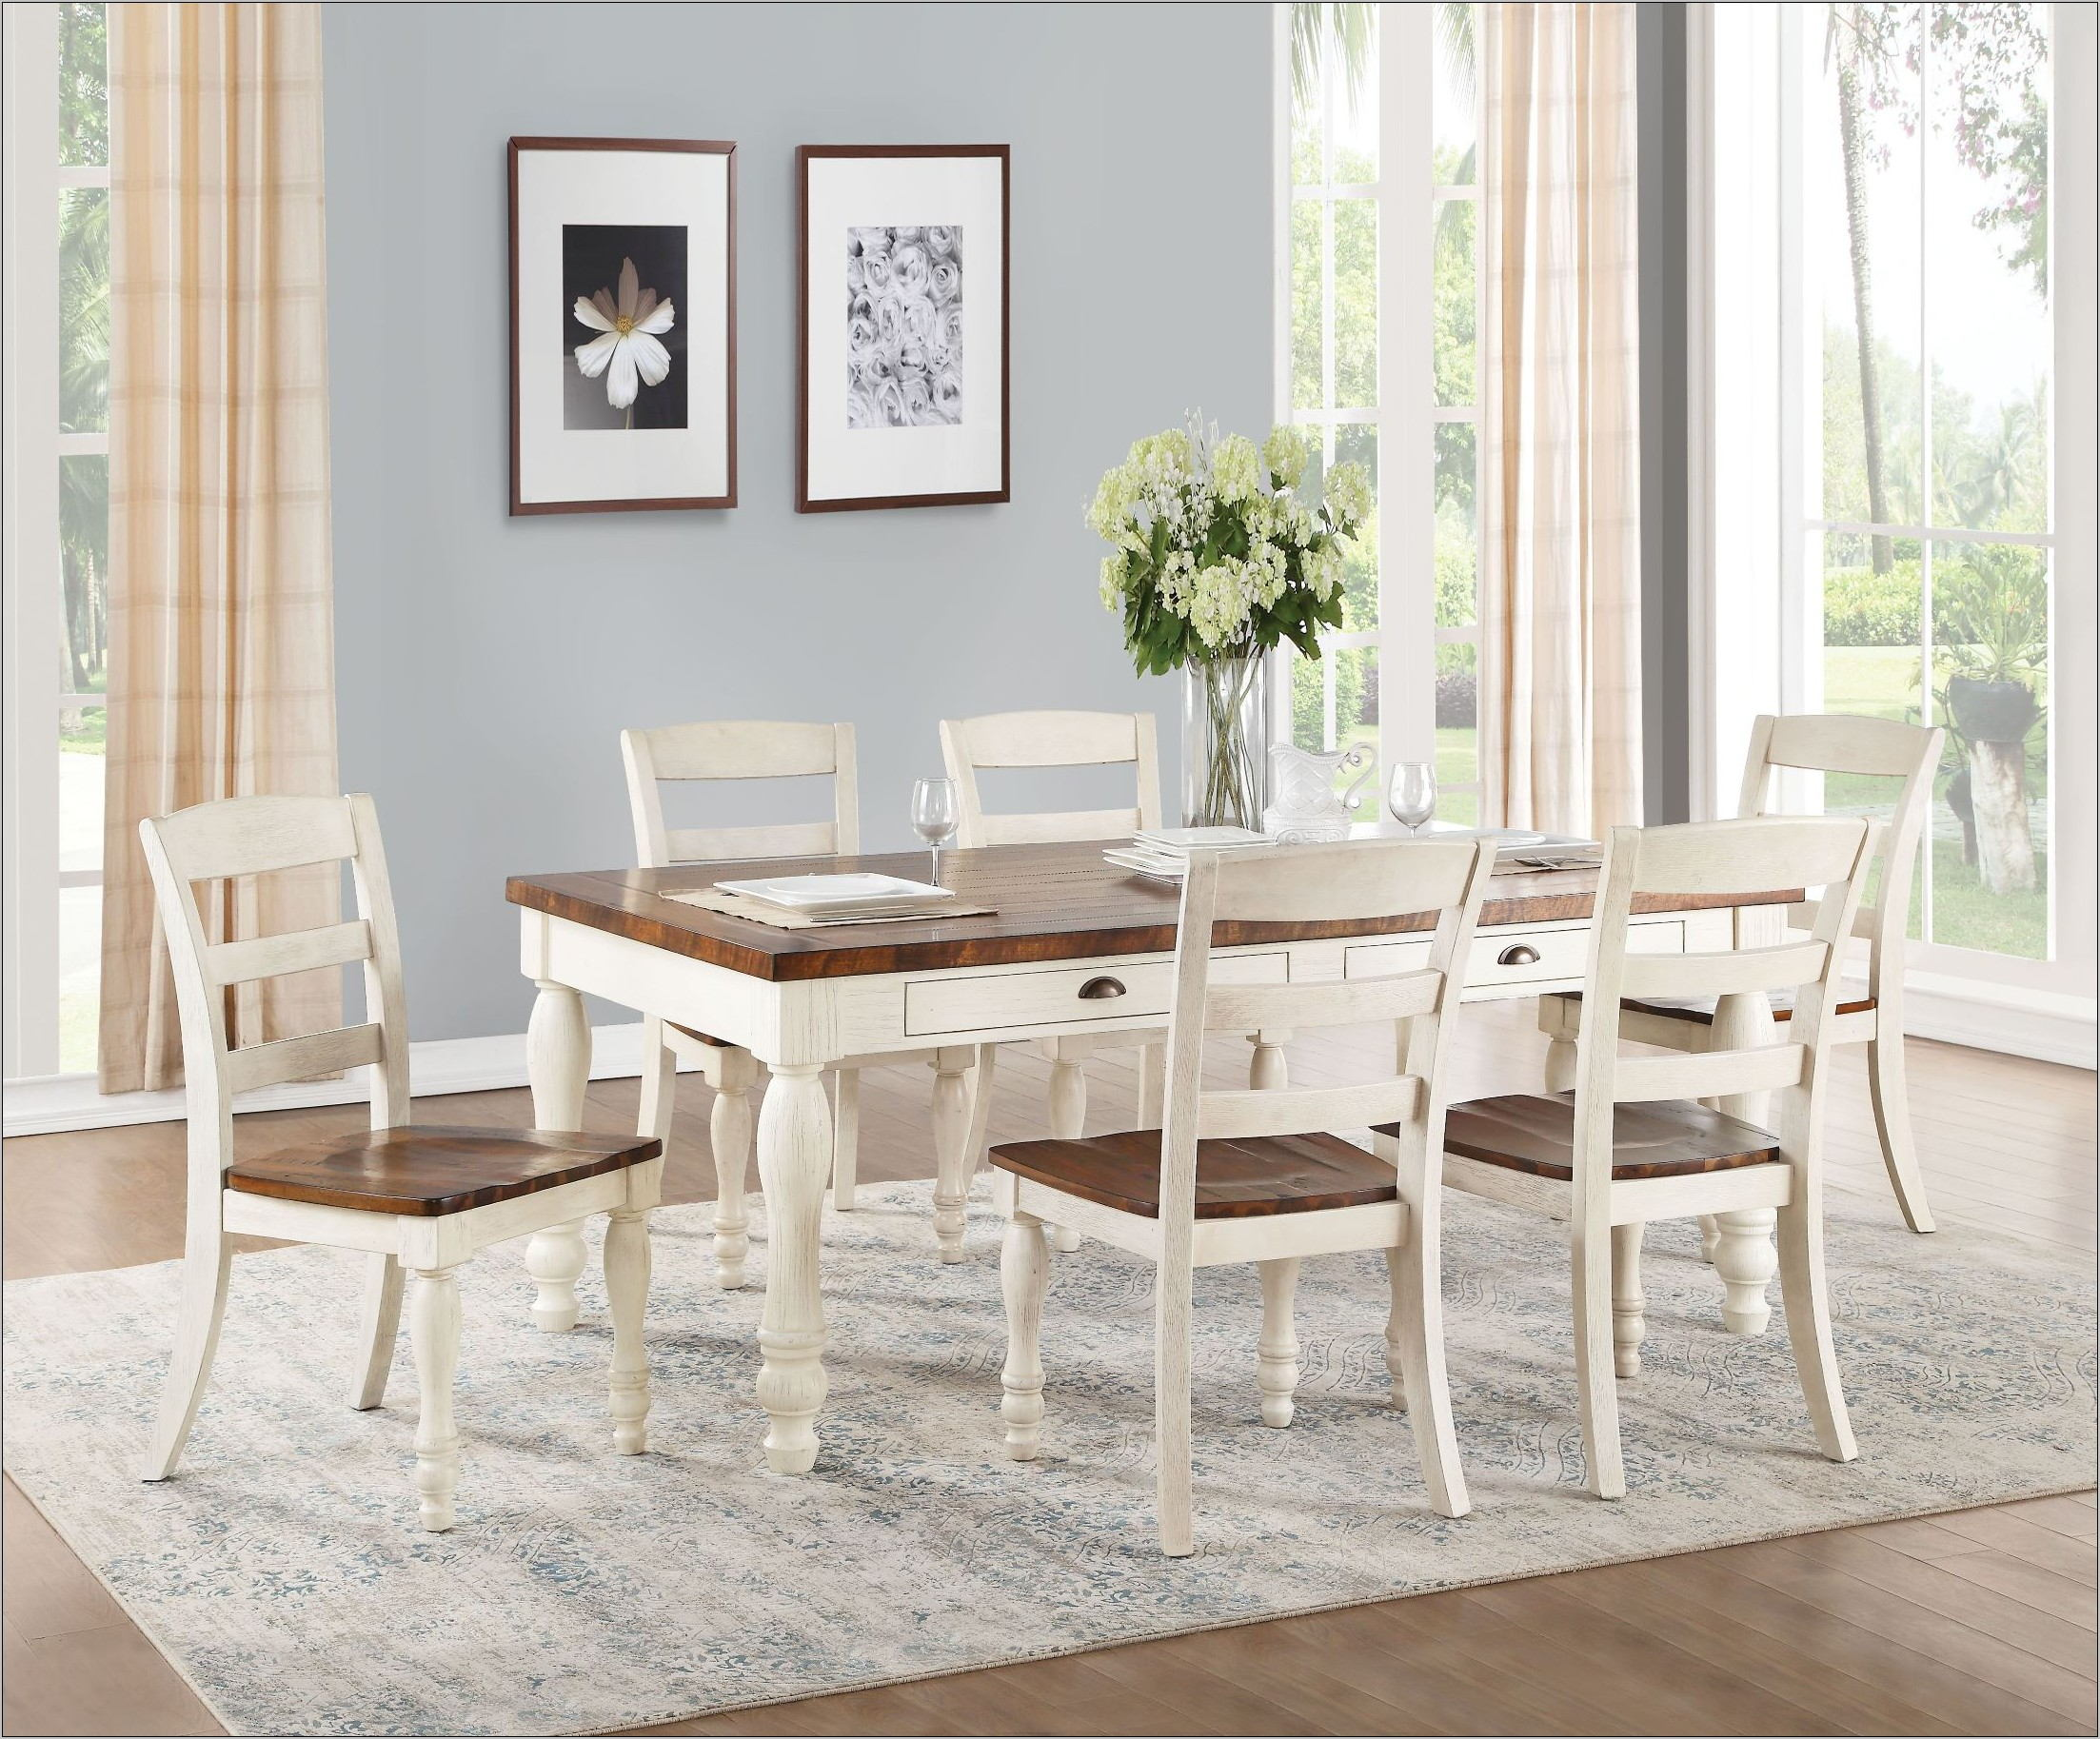 White Washed Dining Room Set